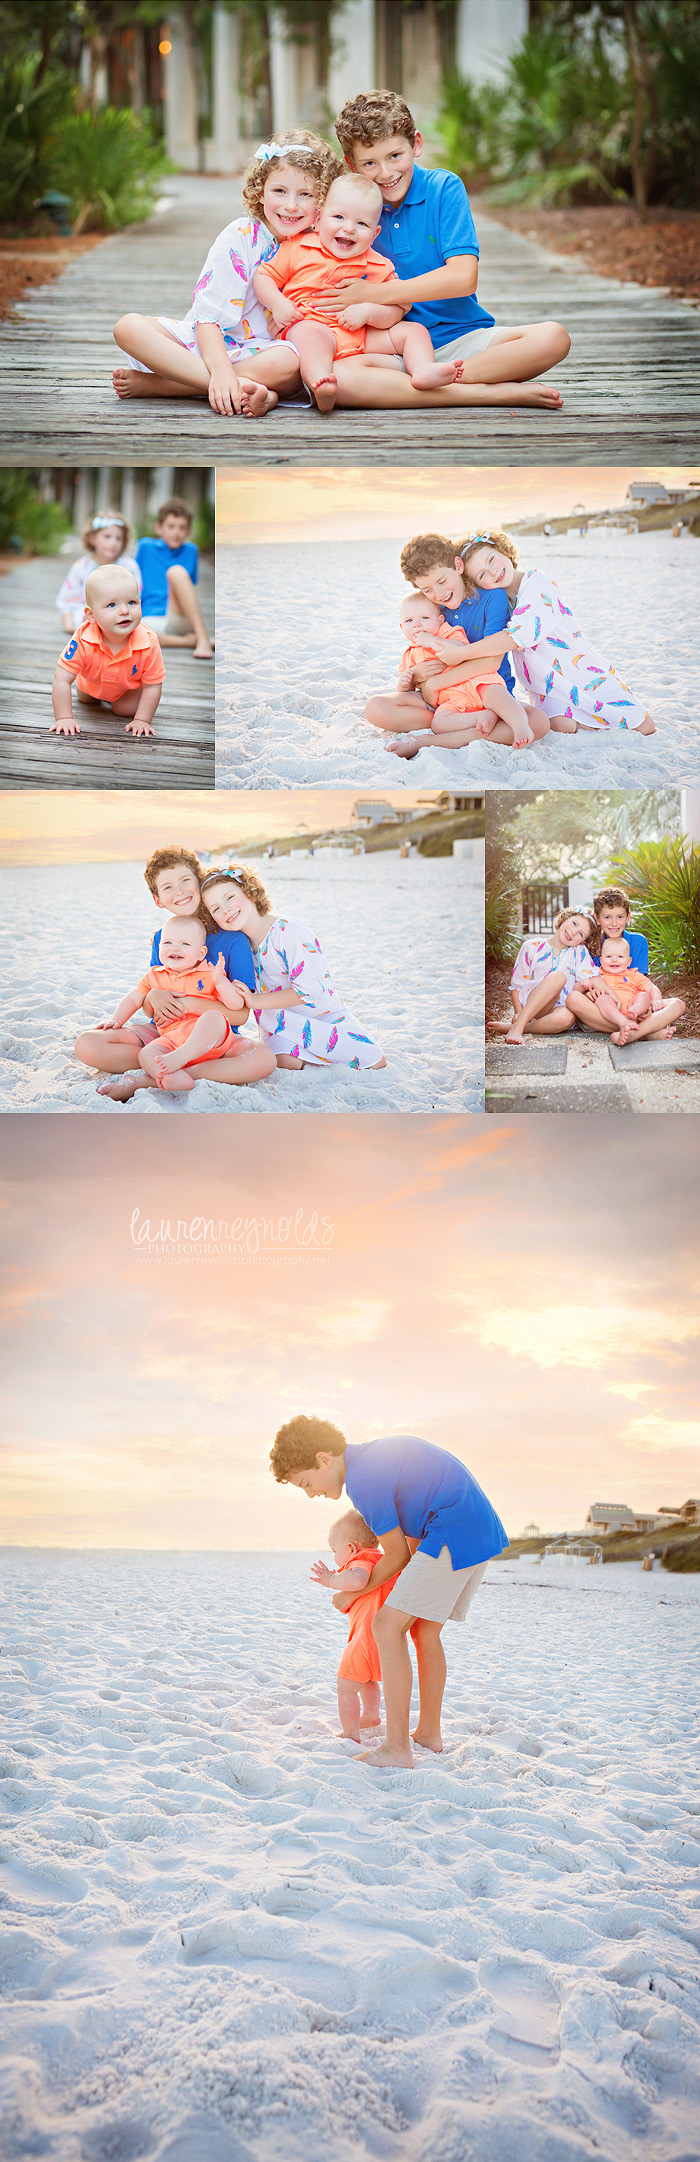 beach lifestyle family portraits